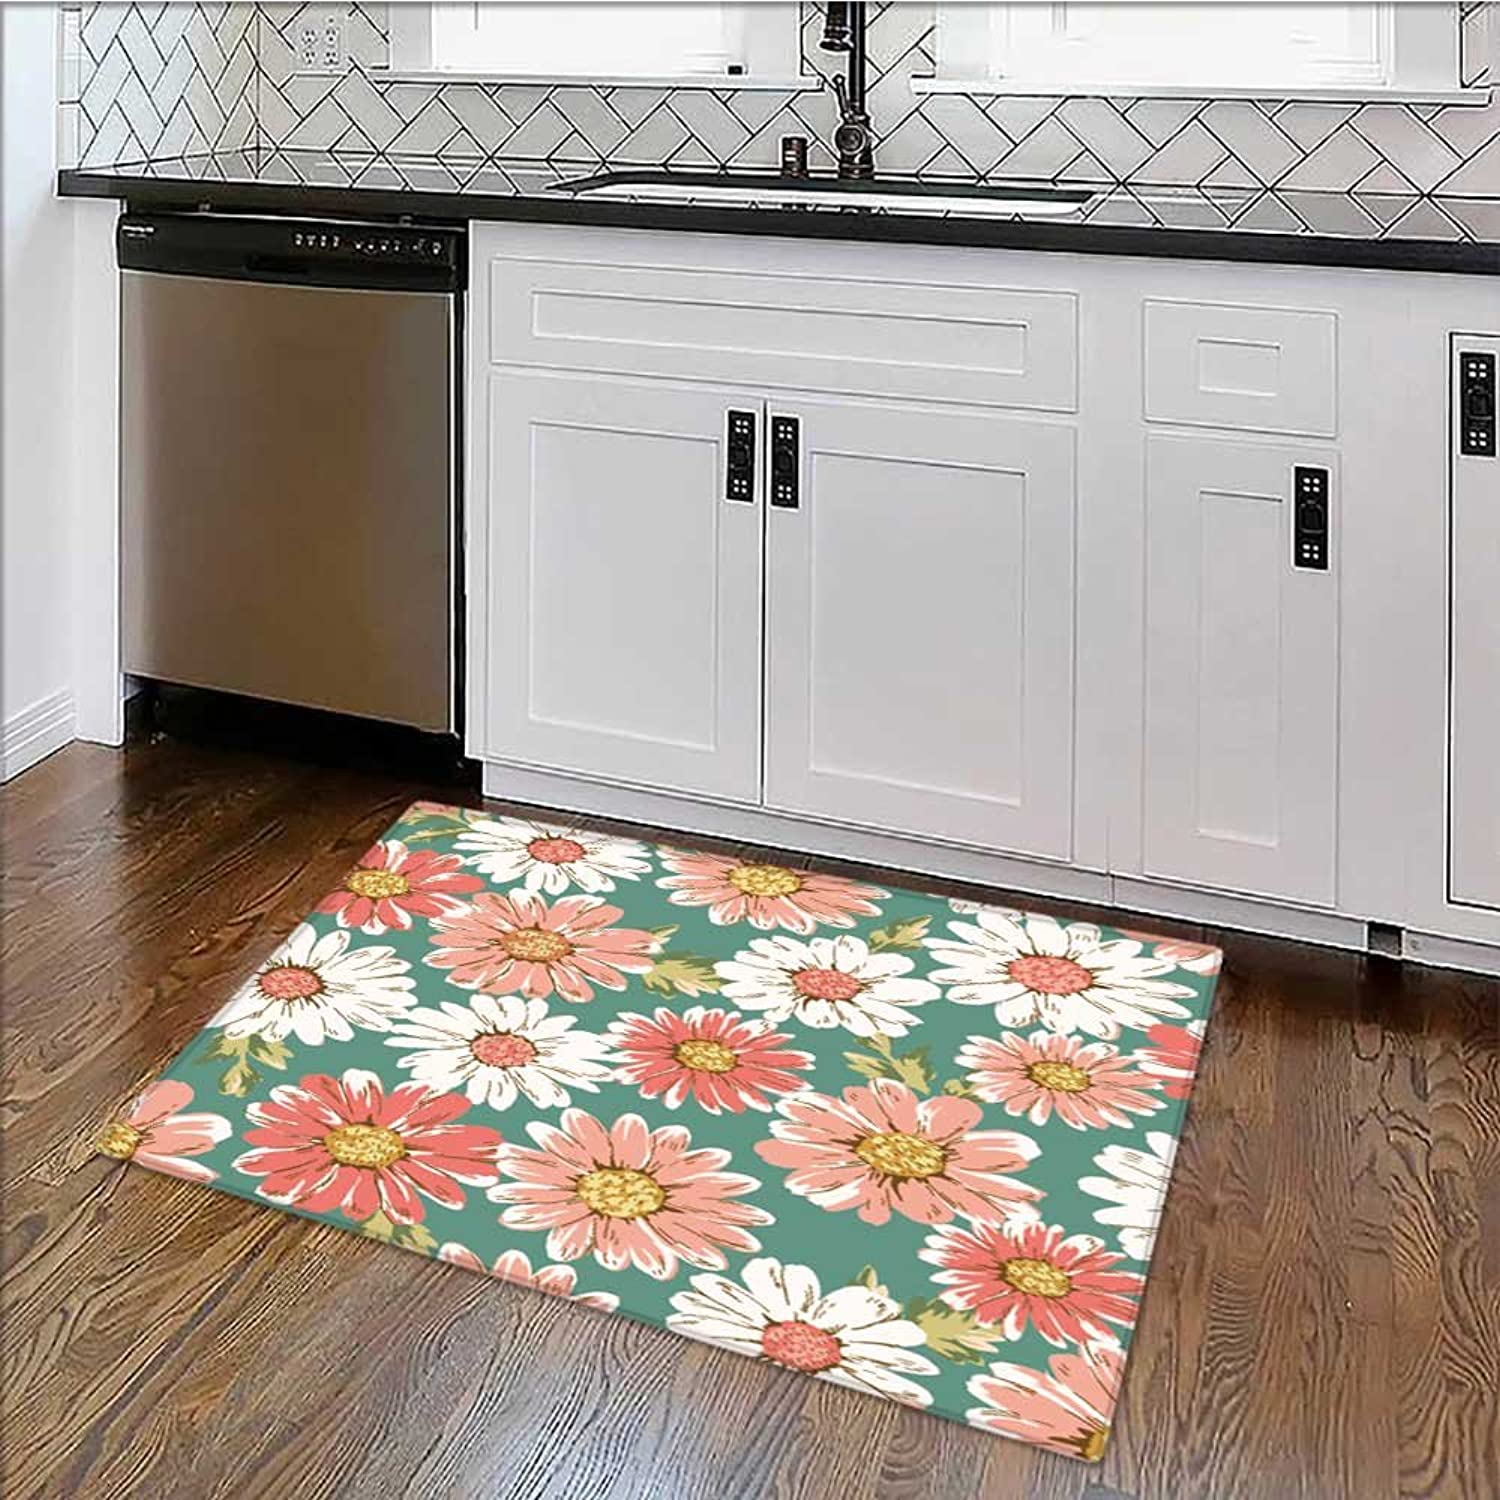 Anti-Static Rugs Flower Daisy printgreen Background Non-to x ic Waterproof W39 x H20